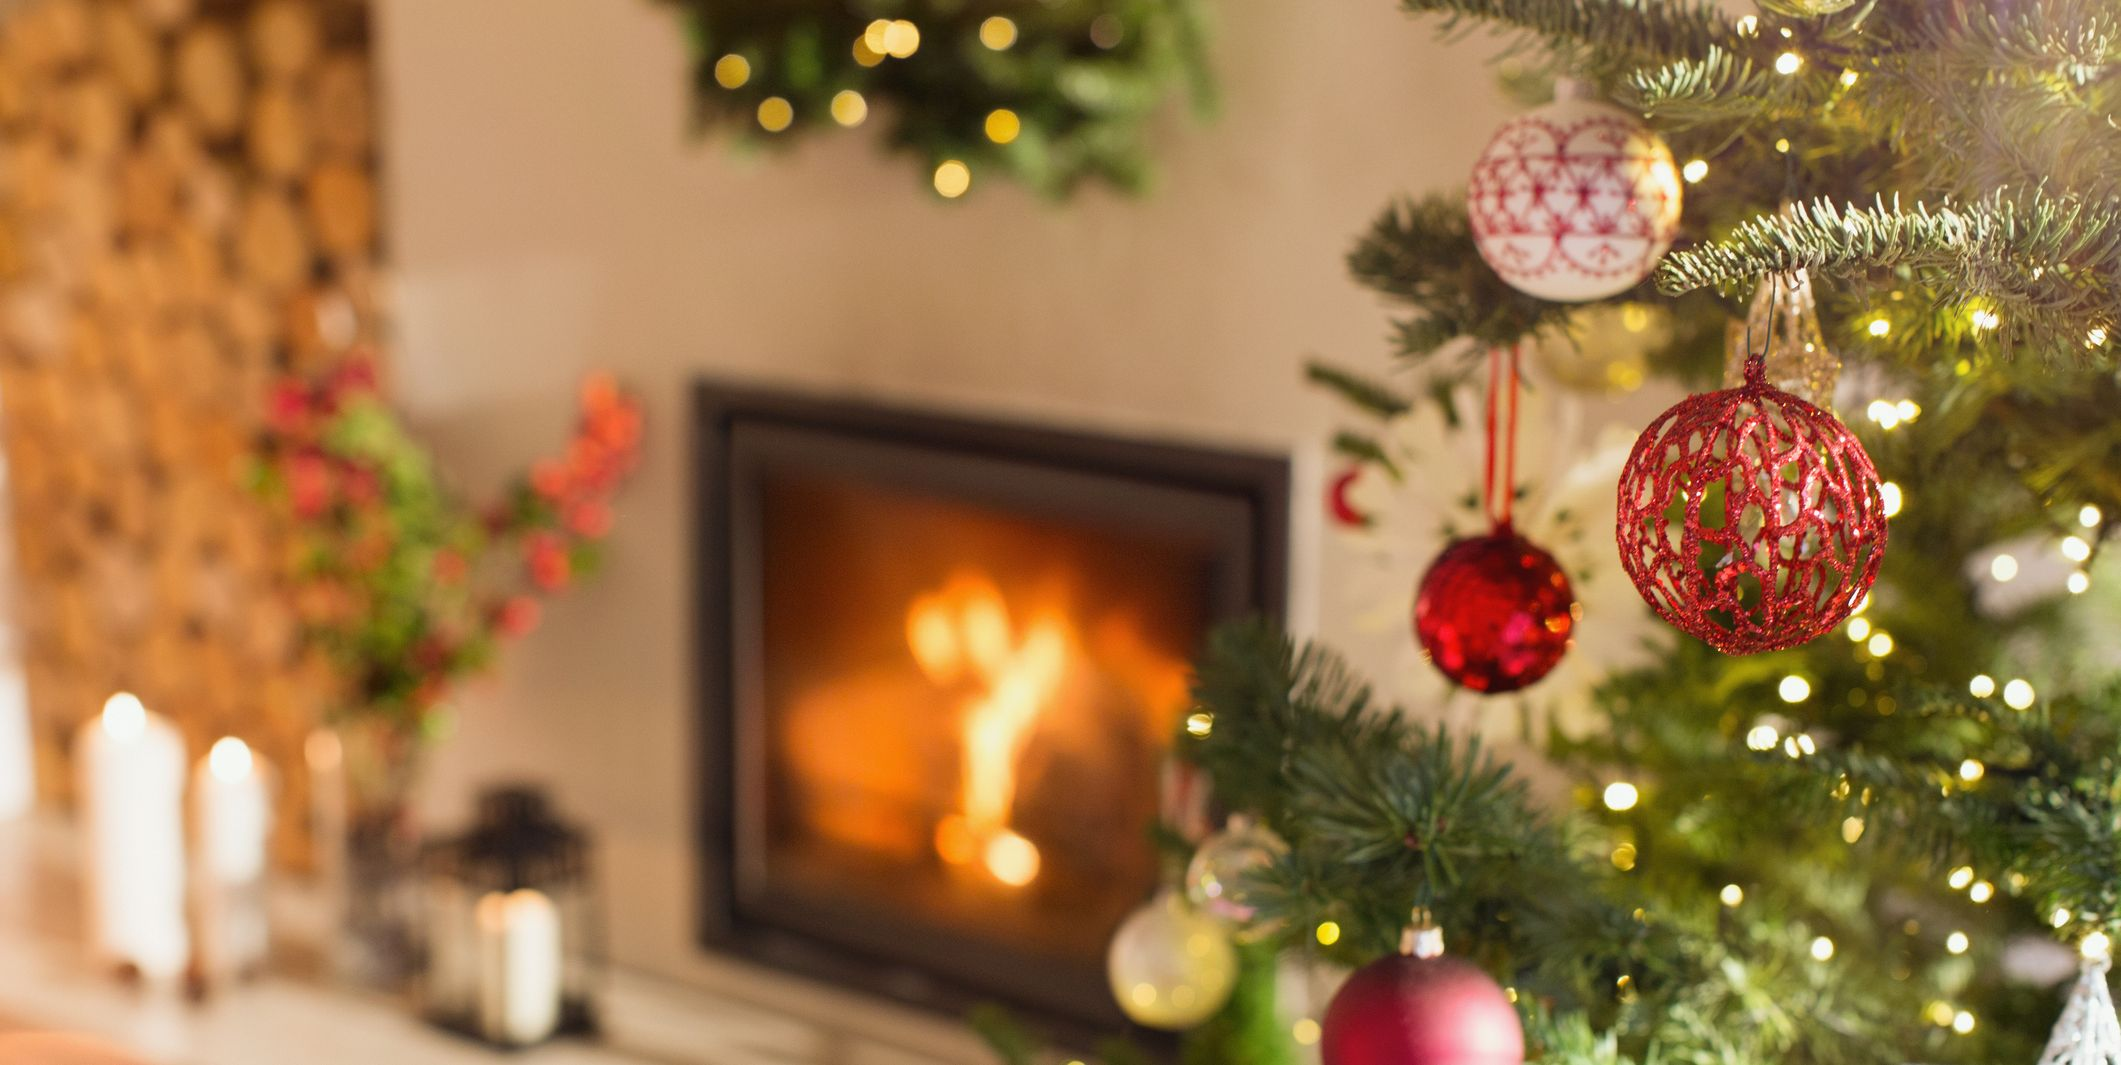 The common decoration mistake that makes our Christmas trees wilt faster